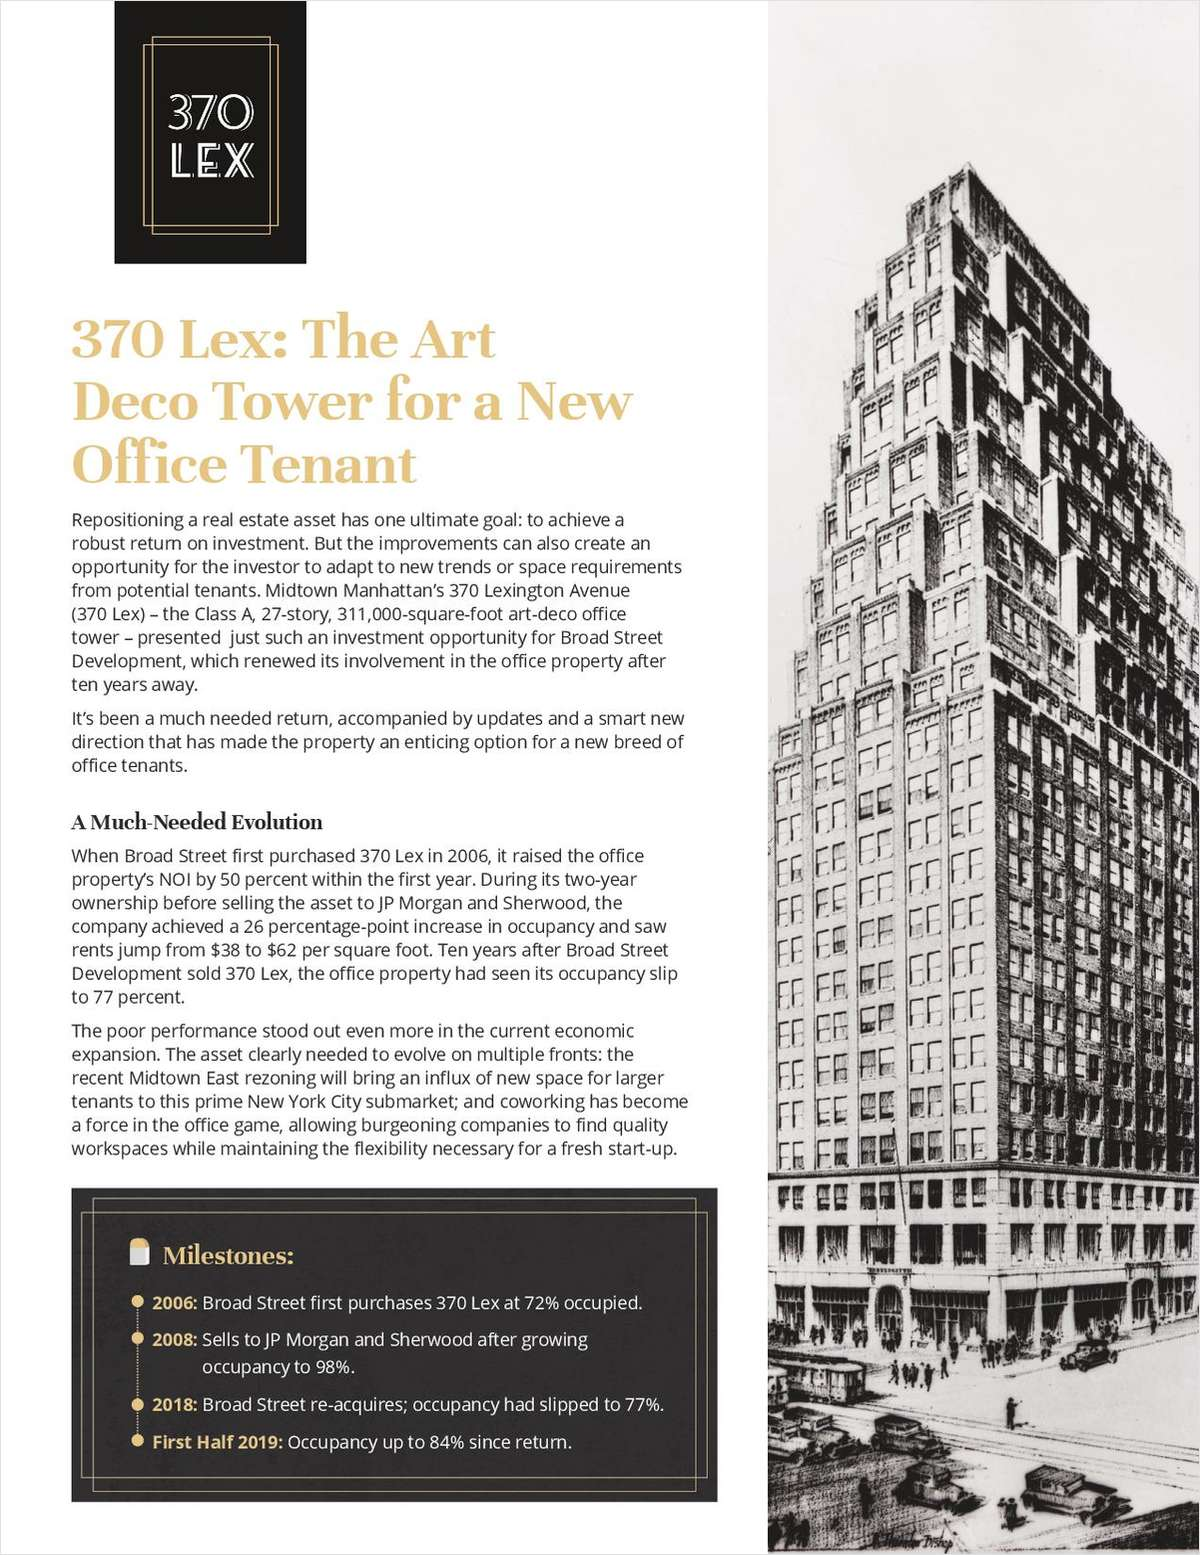 370 Lex: The Art Deco Tower for a New Office Tenant